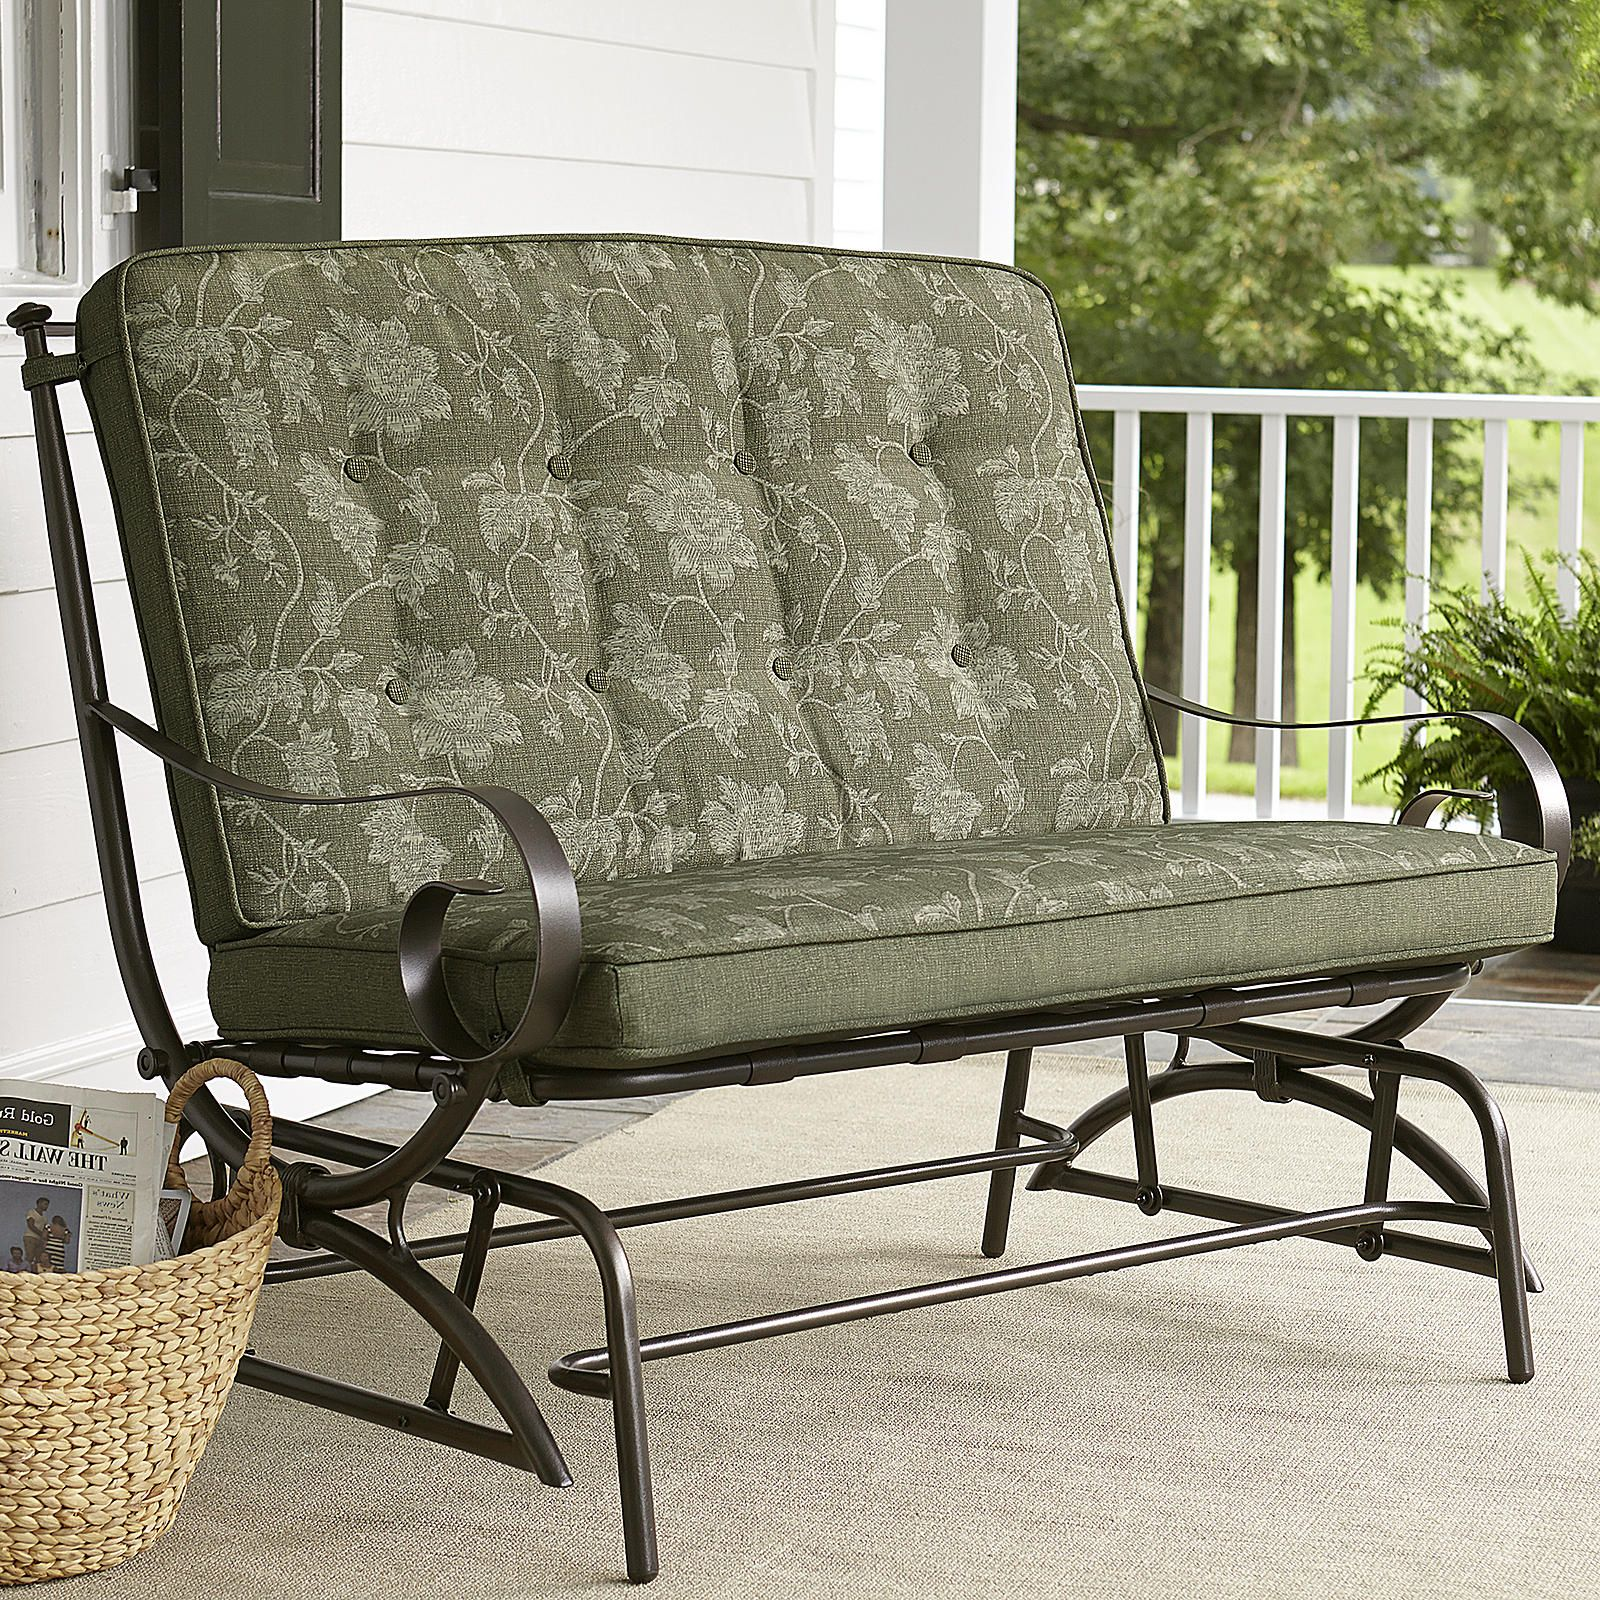 Glider Patio Chairs Jaclyn Smith Cora Cushion Double Glider Outdoor Living